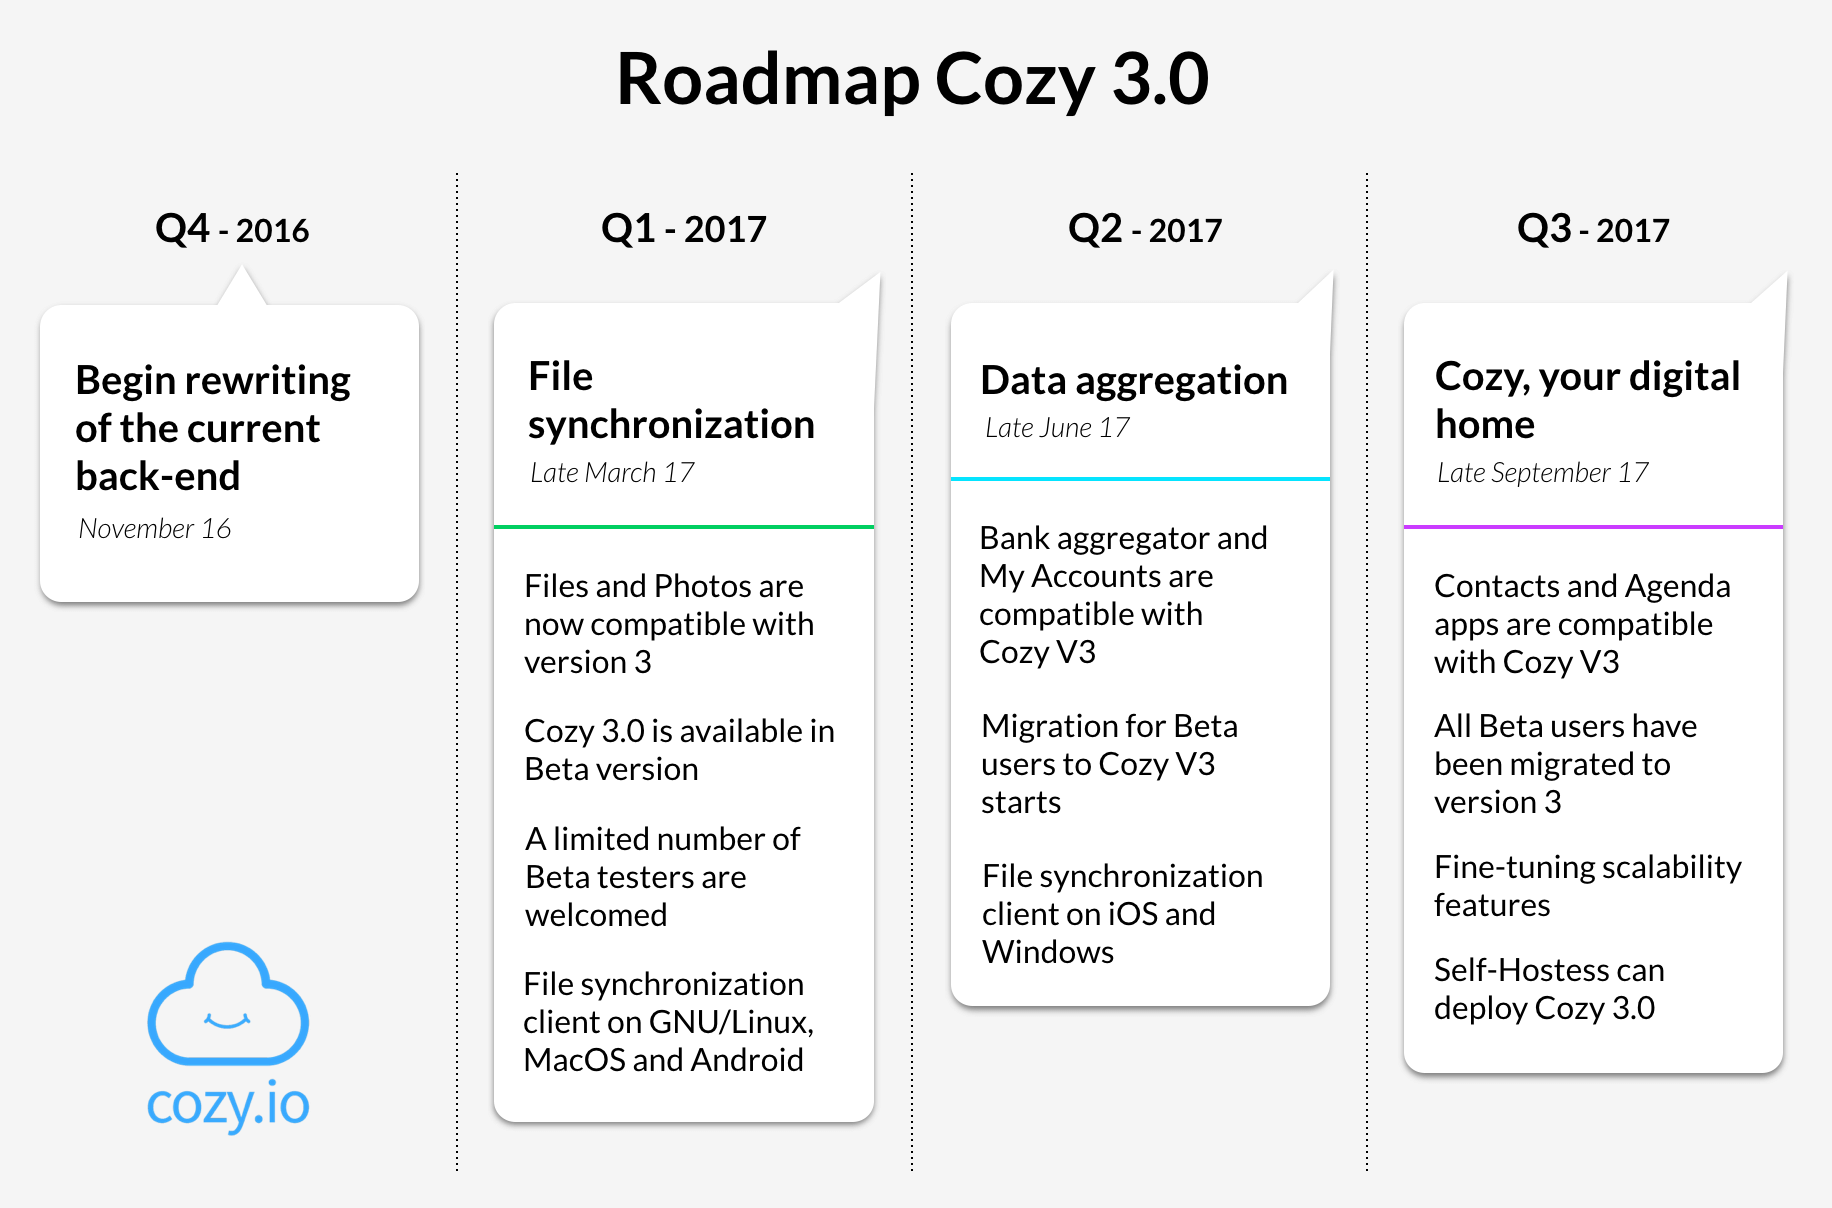 Roadmap Cozy 3.0